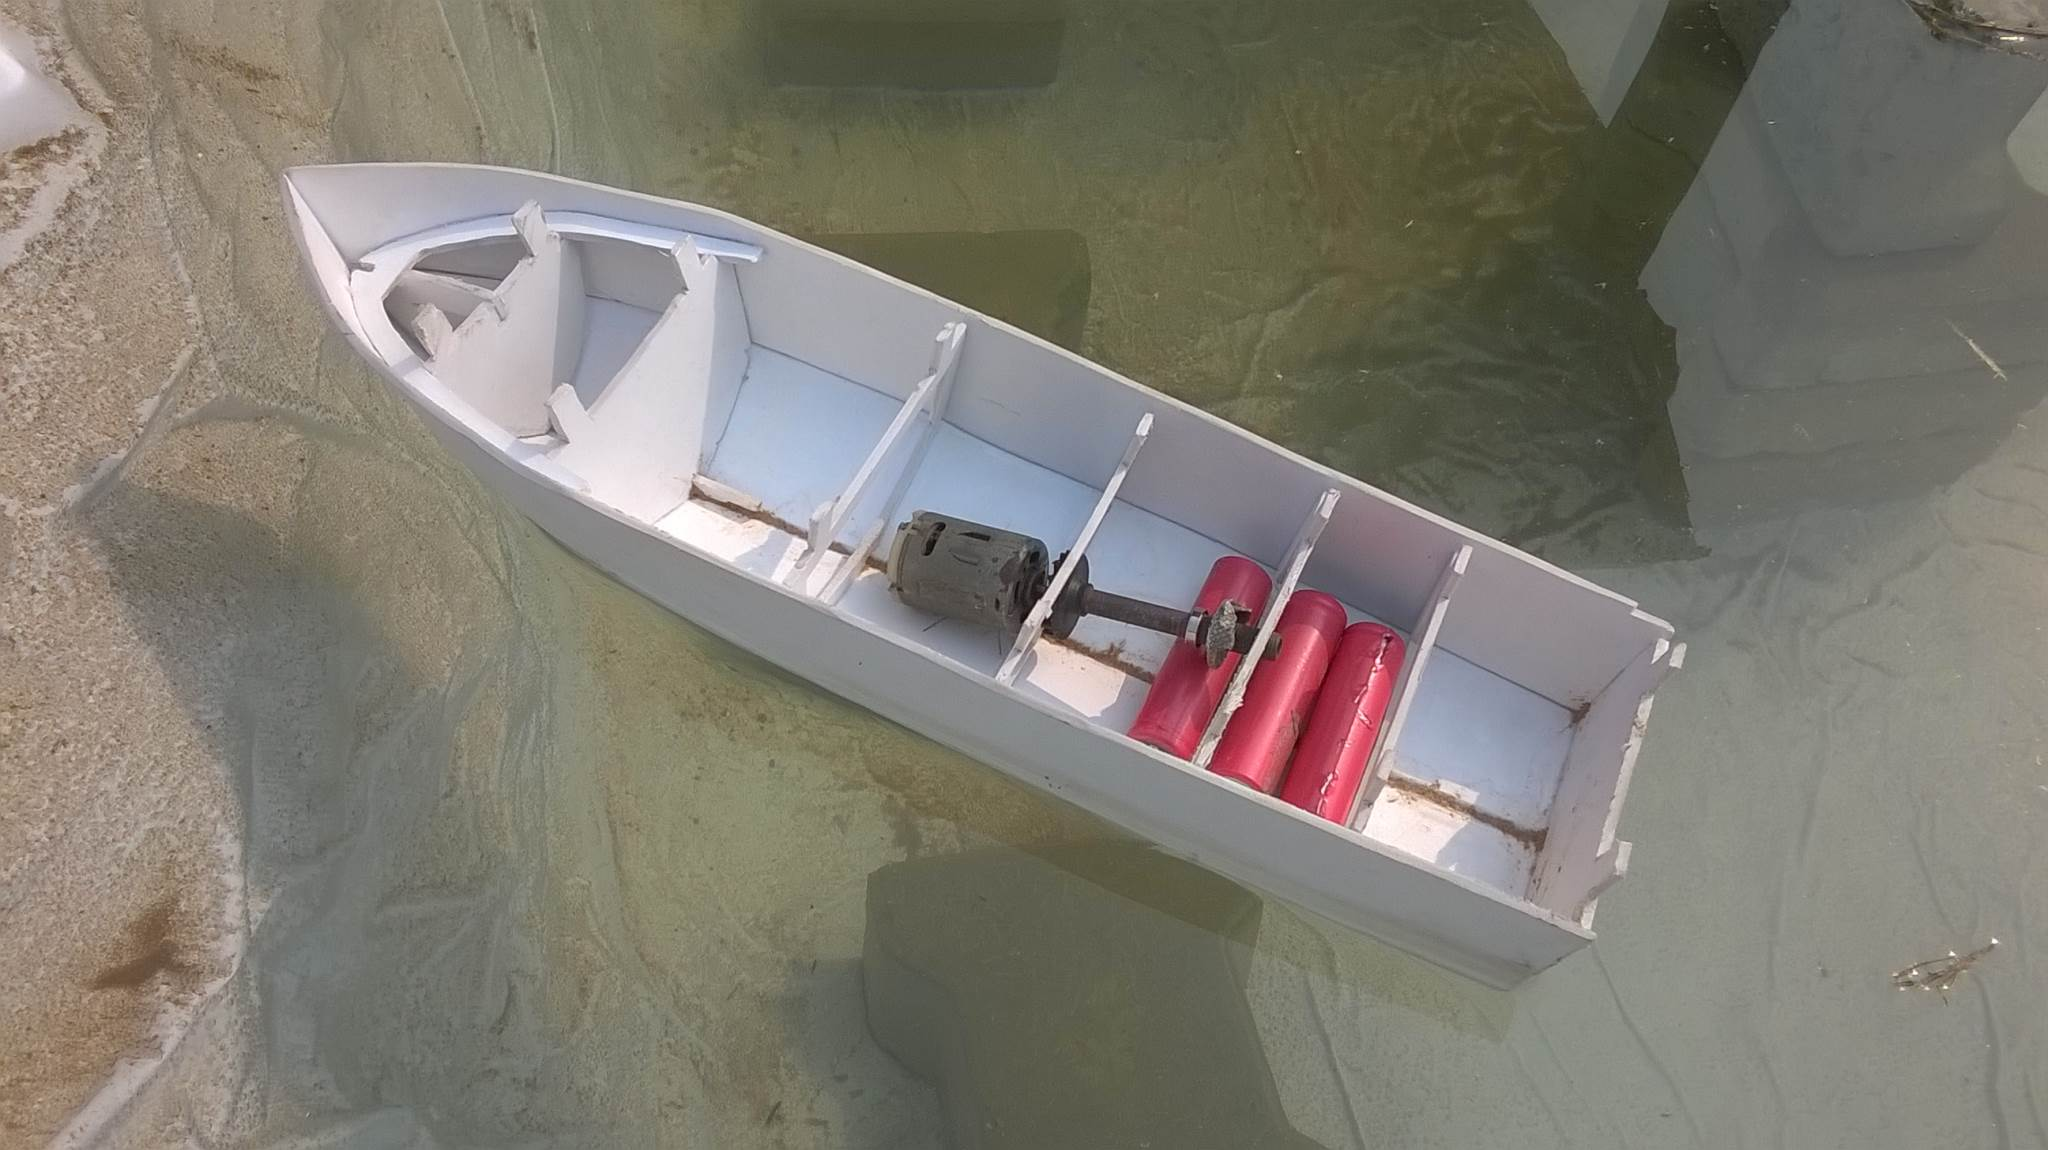 Testing the RC Boat on Water for leakage and balance